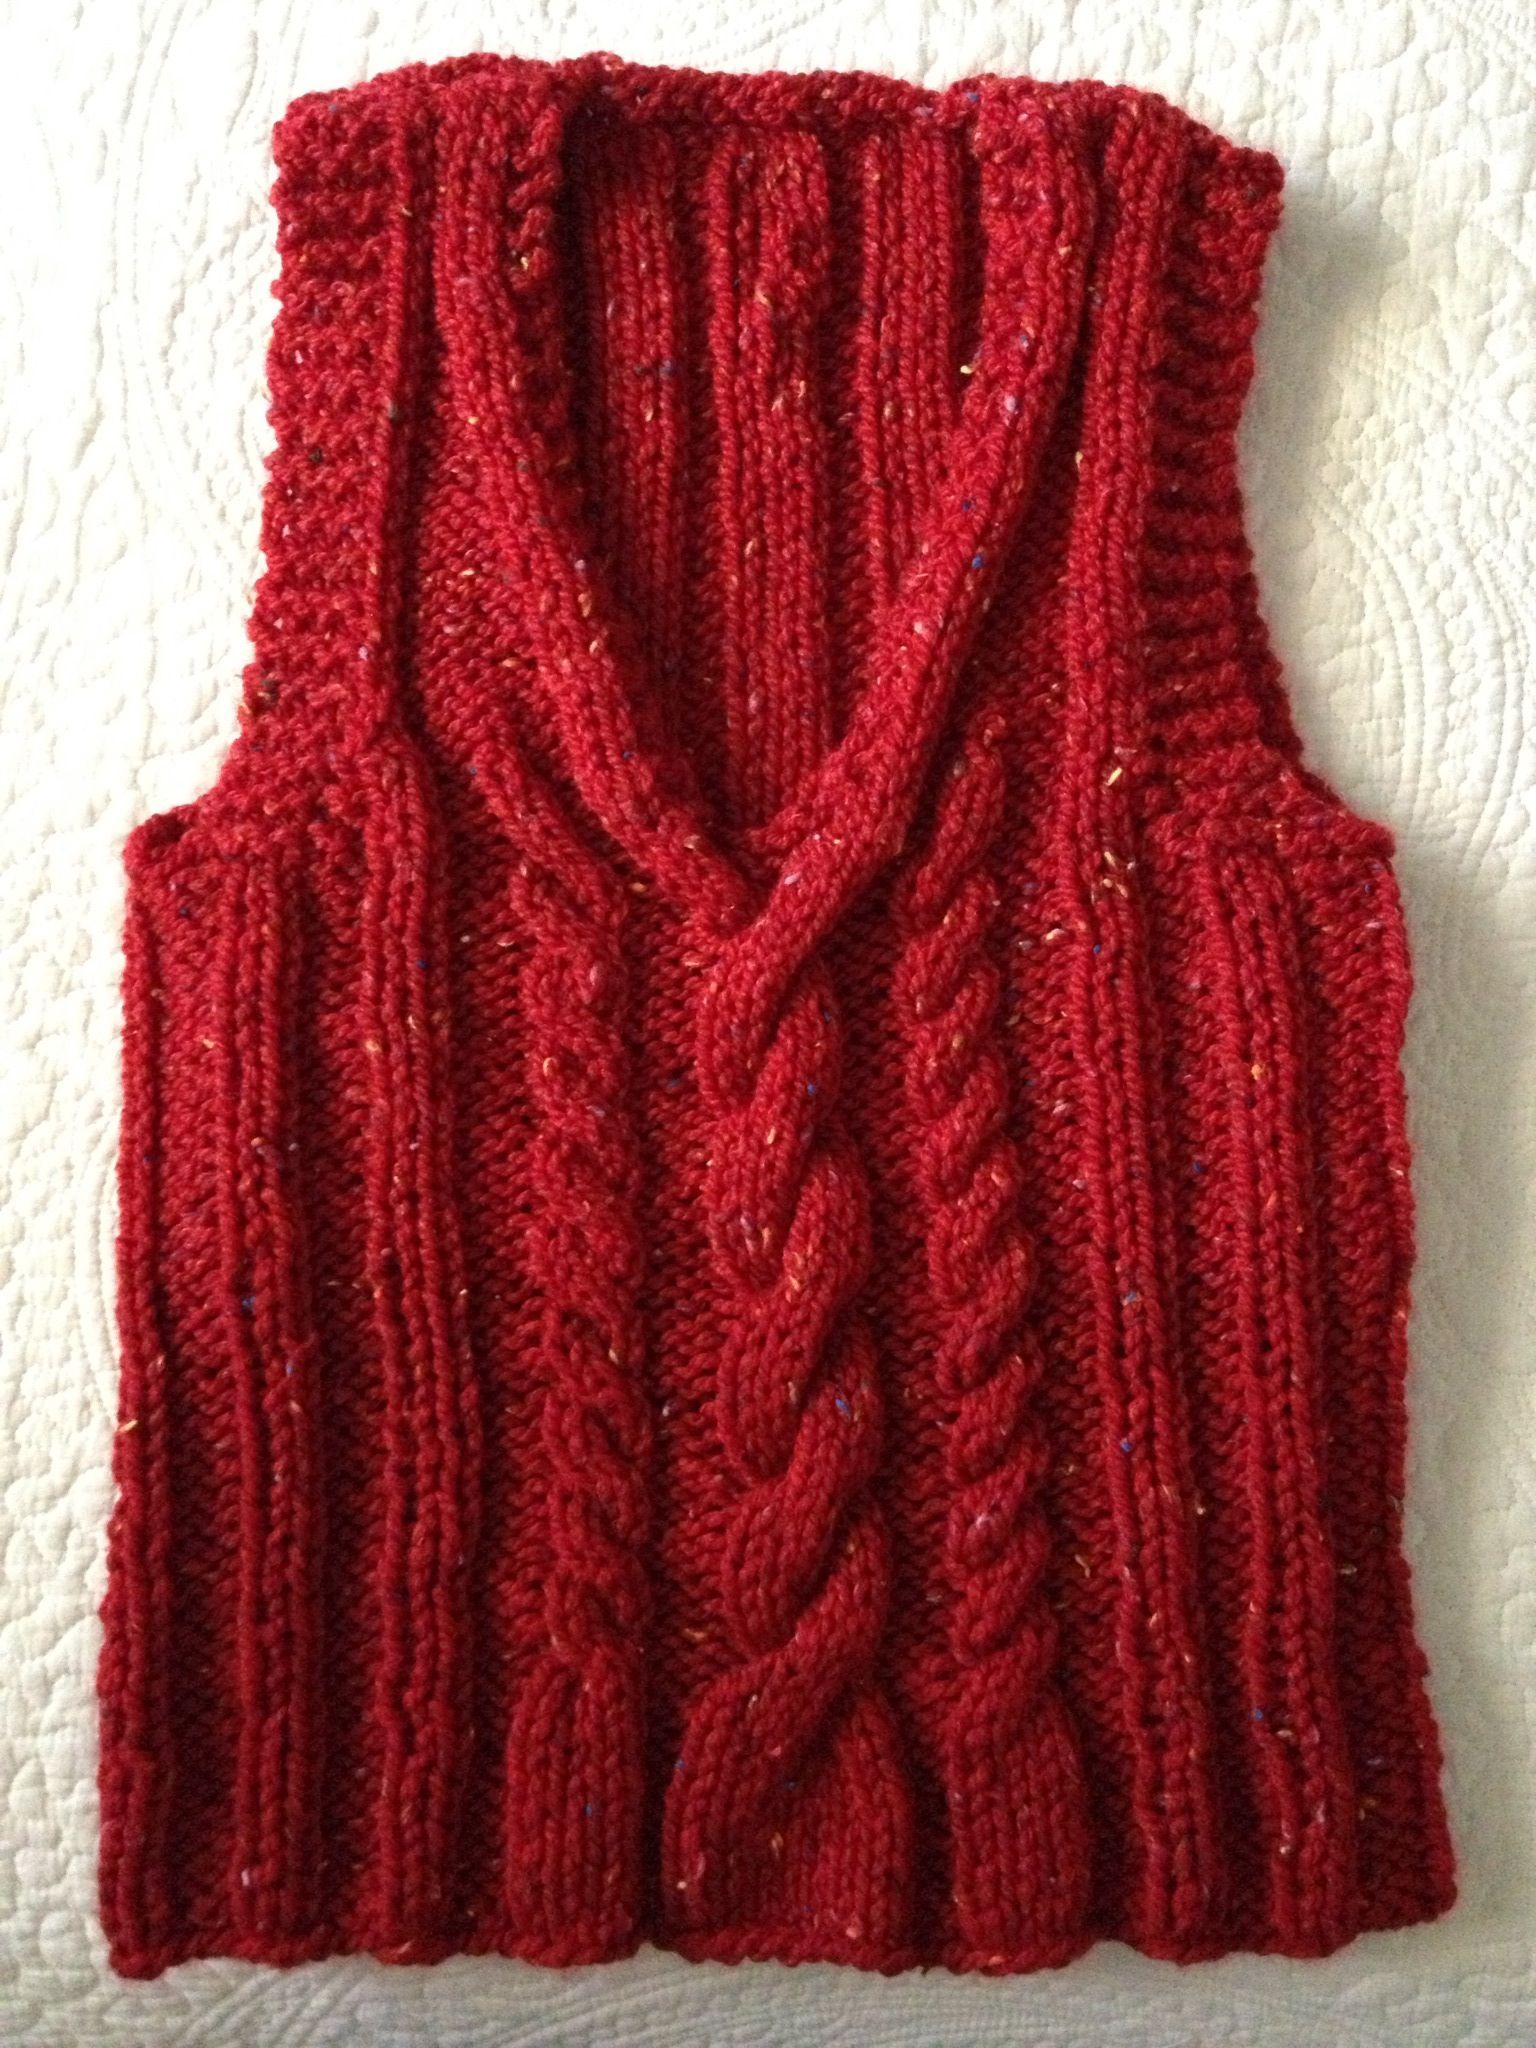 Cable Vest; Drops by Design pattern, knit in round with bulky yarn ...